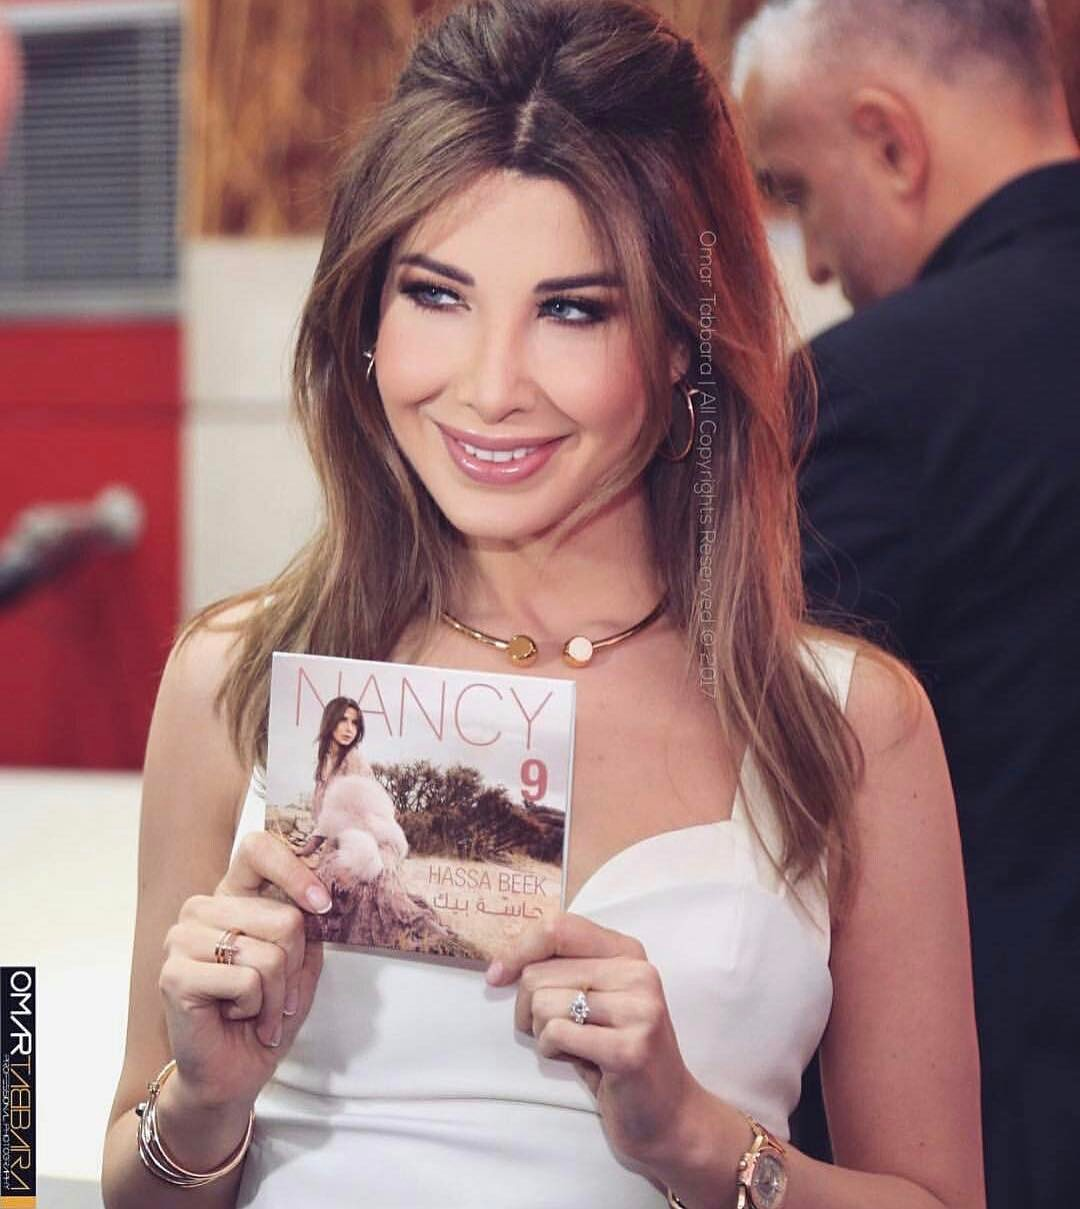 Nancy Ajram Instagram username